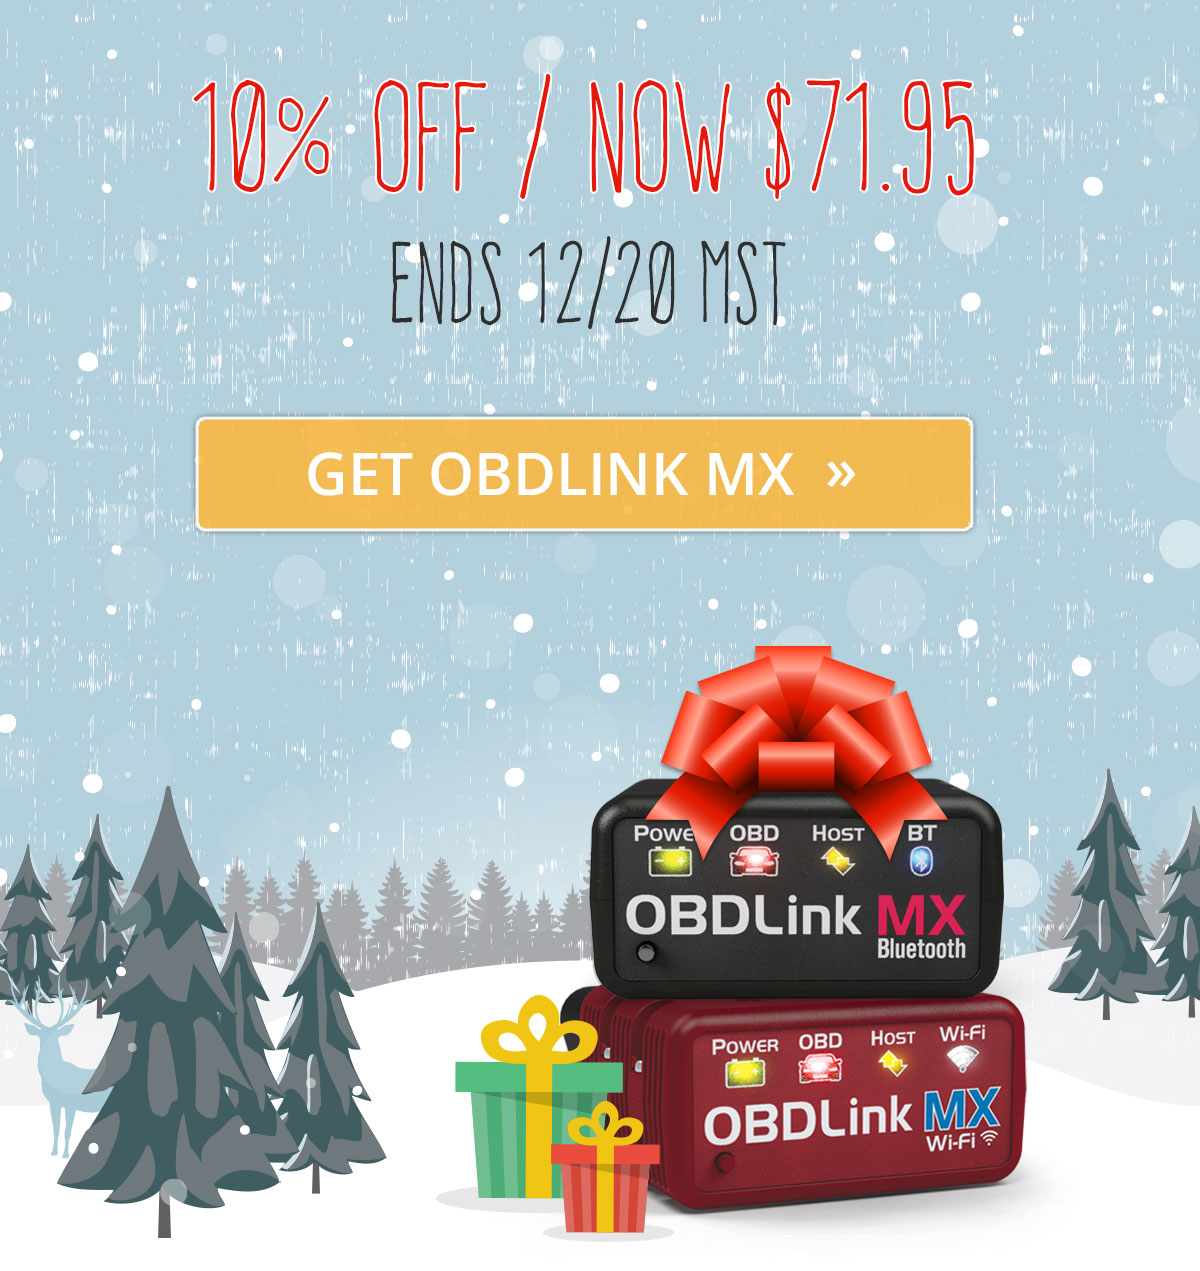 OBDLink Holiday Sale - 10% off OBDLink MX Bluetooth or MX Wi-Fi